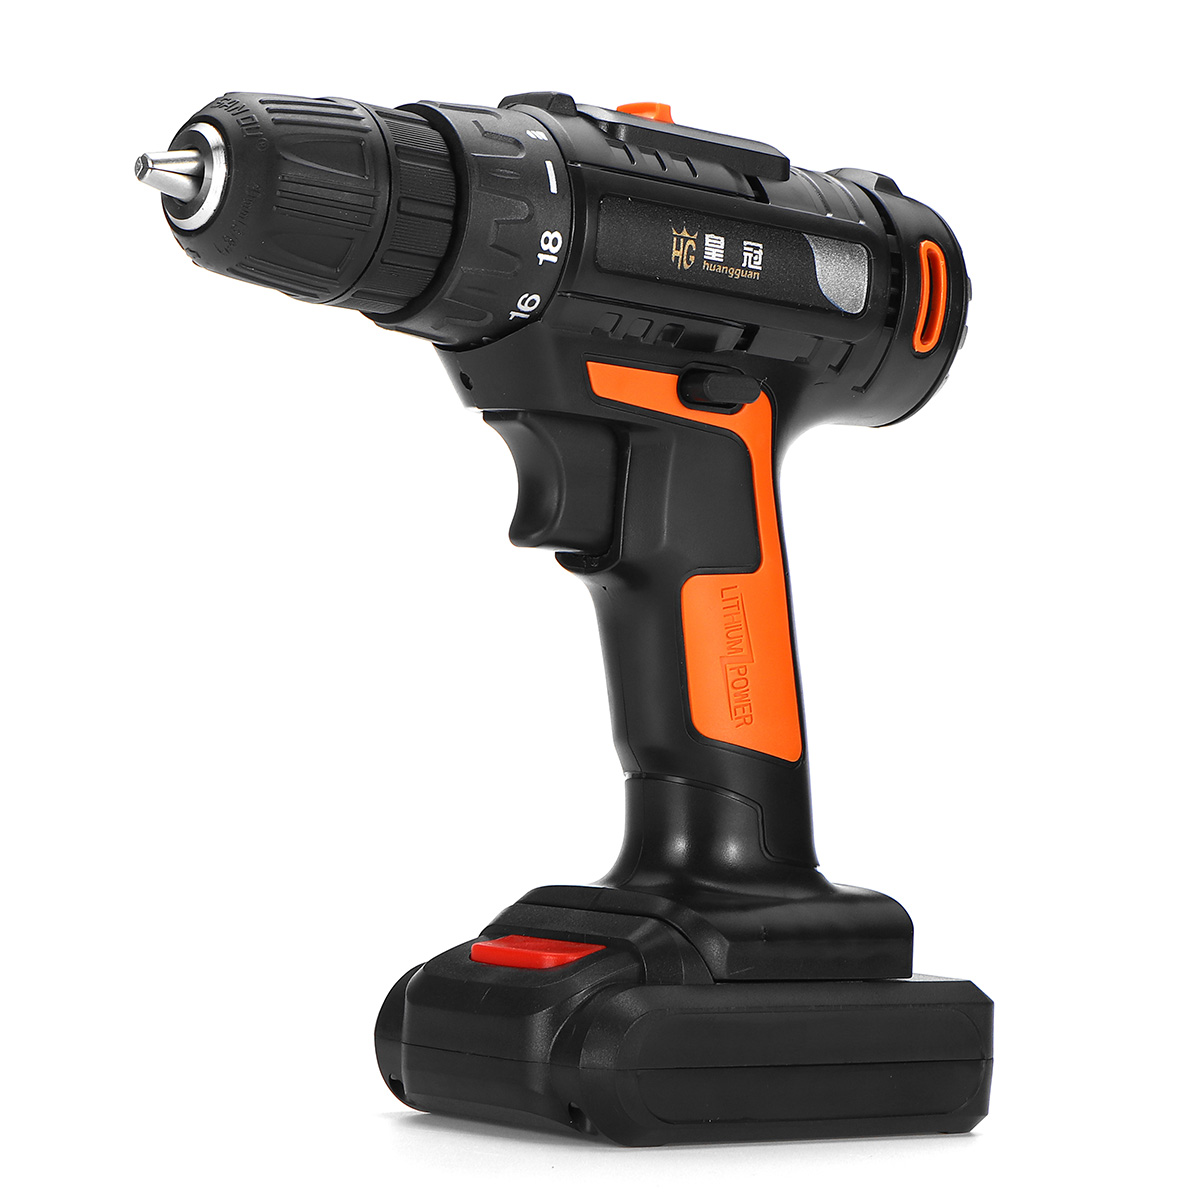 48V Electric Drill Cordless Rechargeable Screwdriver Drill Screw Set Repair Tools Kit